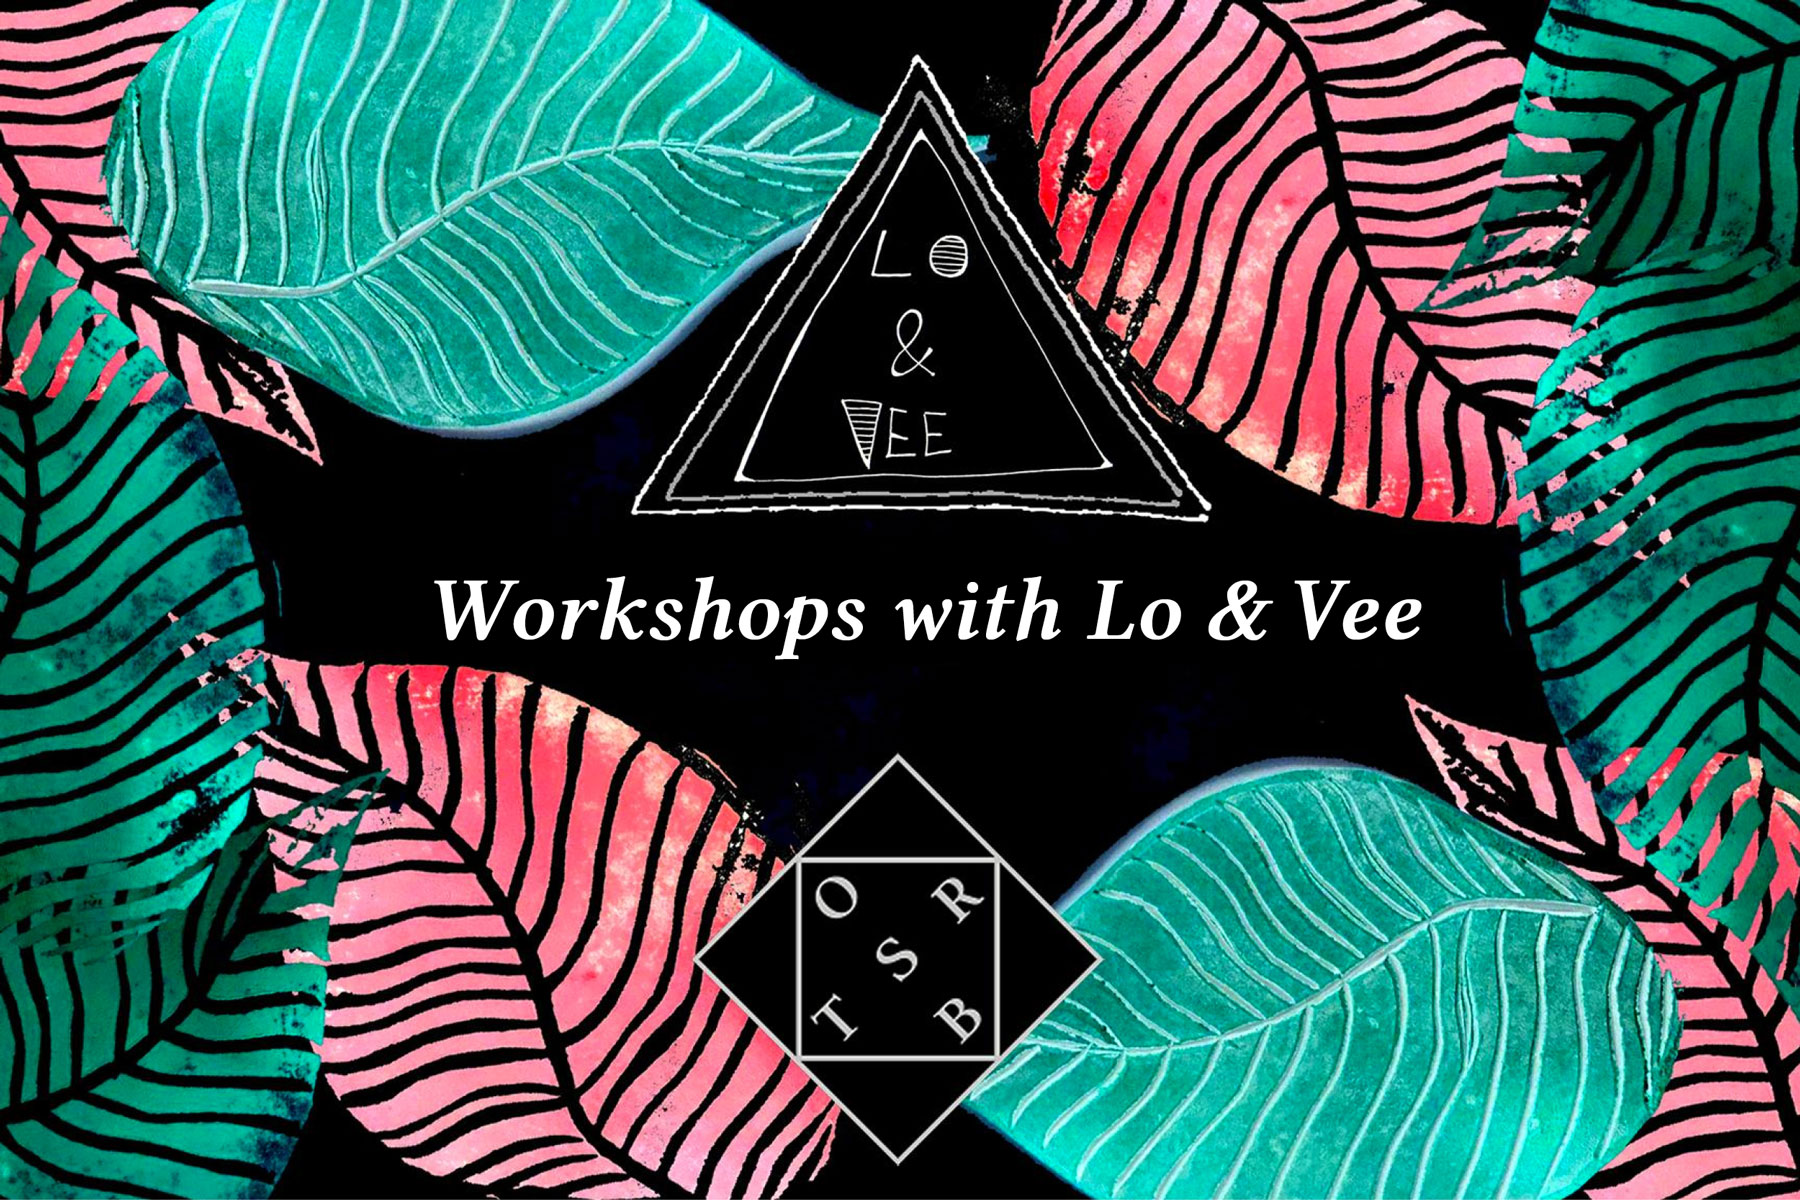 Creative workshops with Lo & Vee